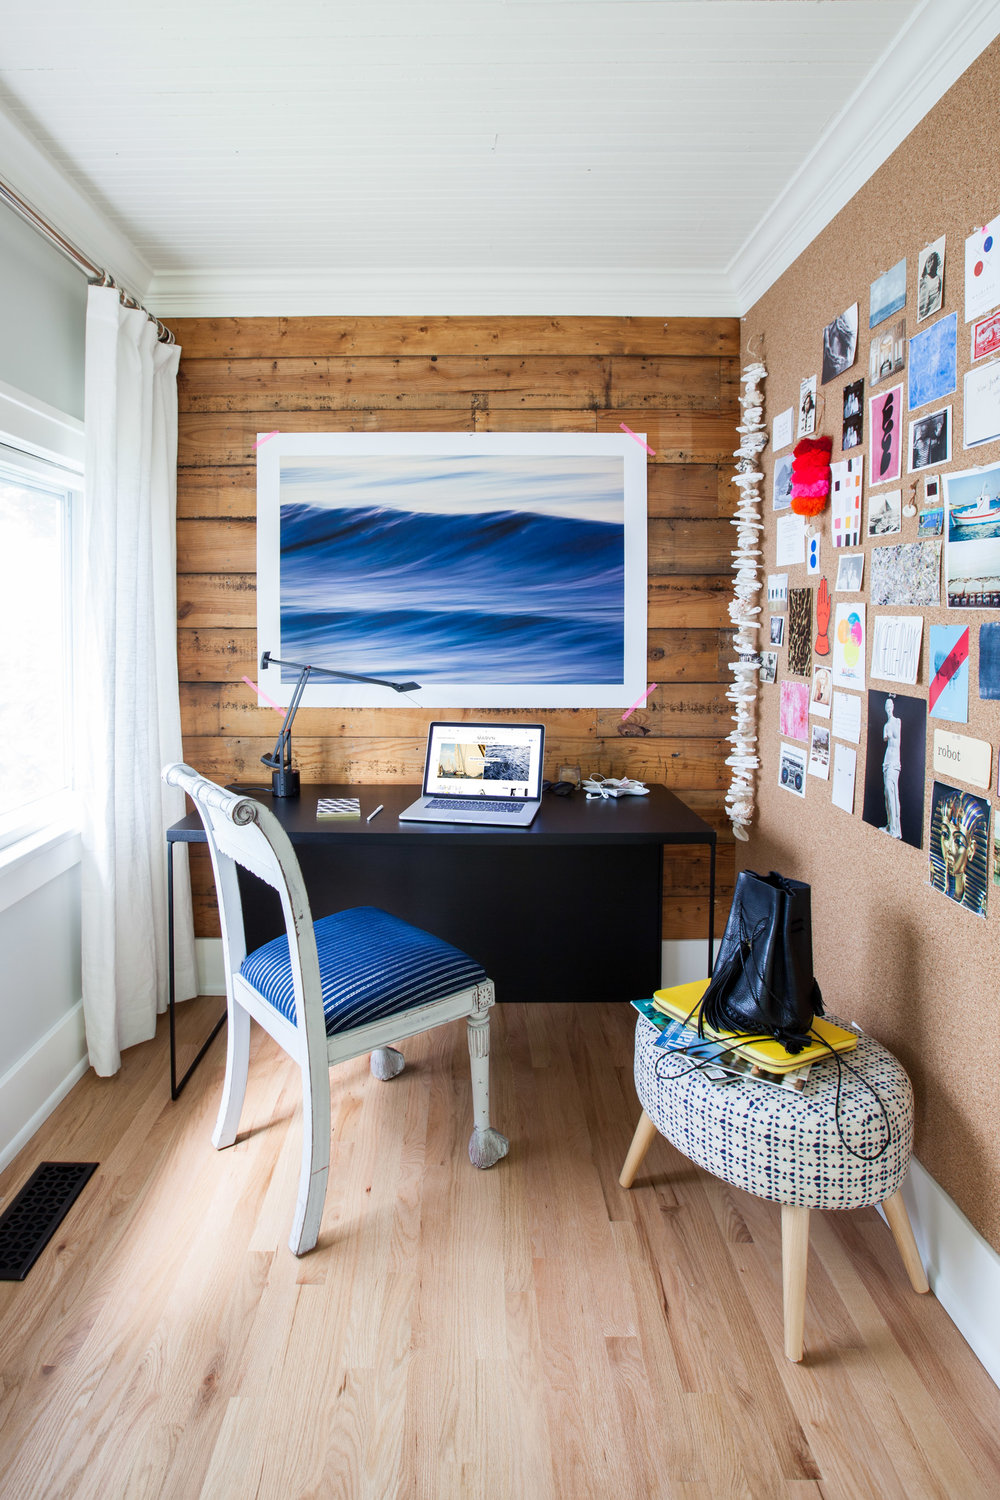 Michelle's home office, featuring Waves II by Greg Anthon. Photo by Marta Xochilt Perez.